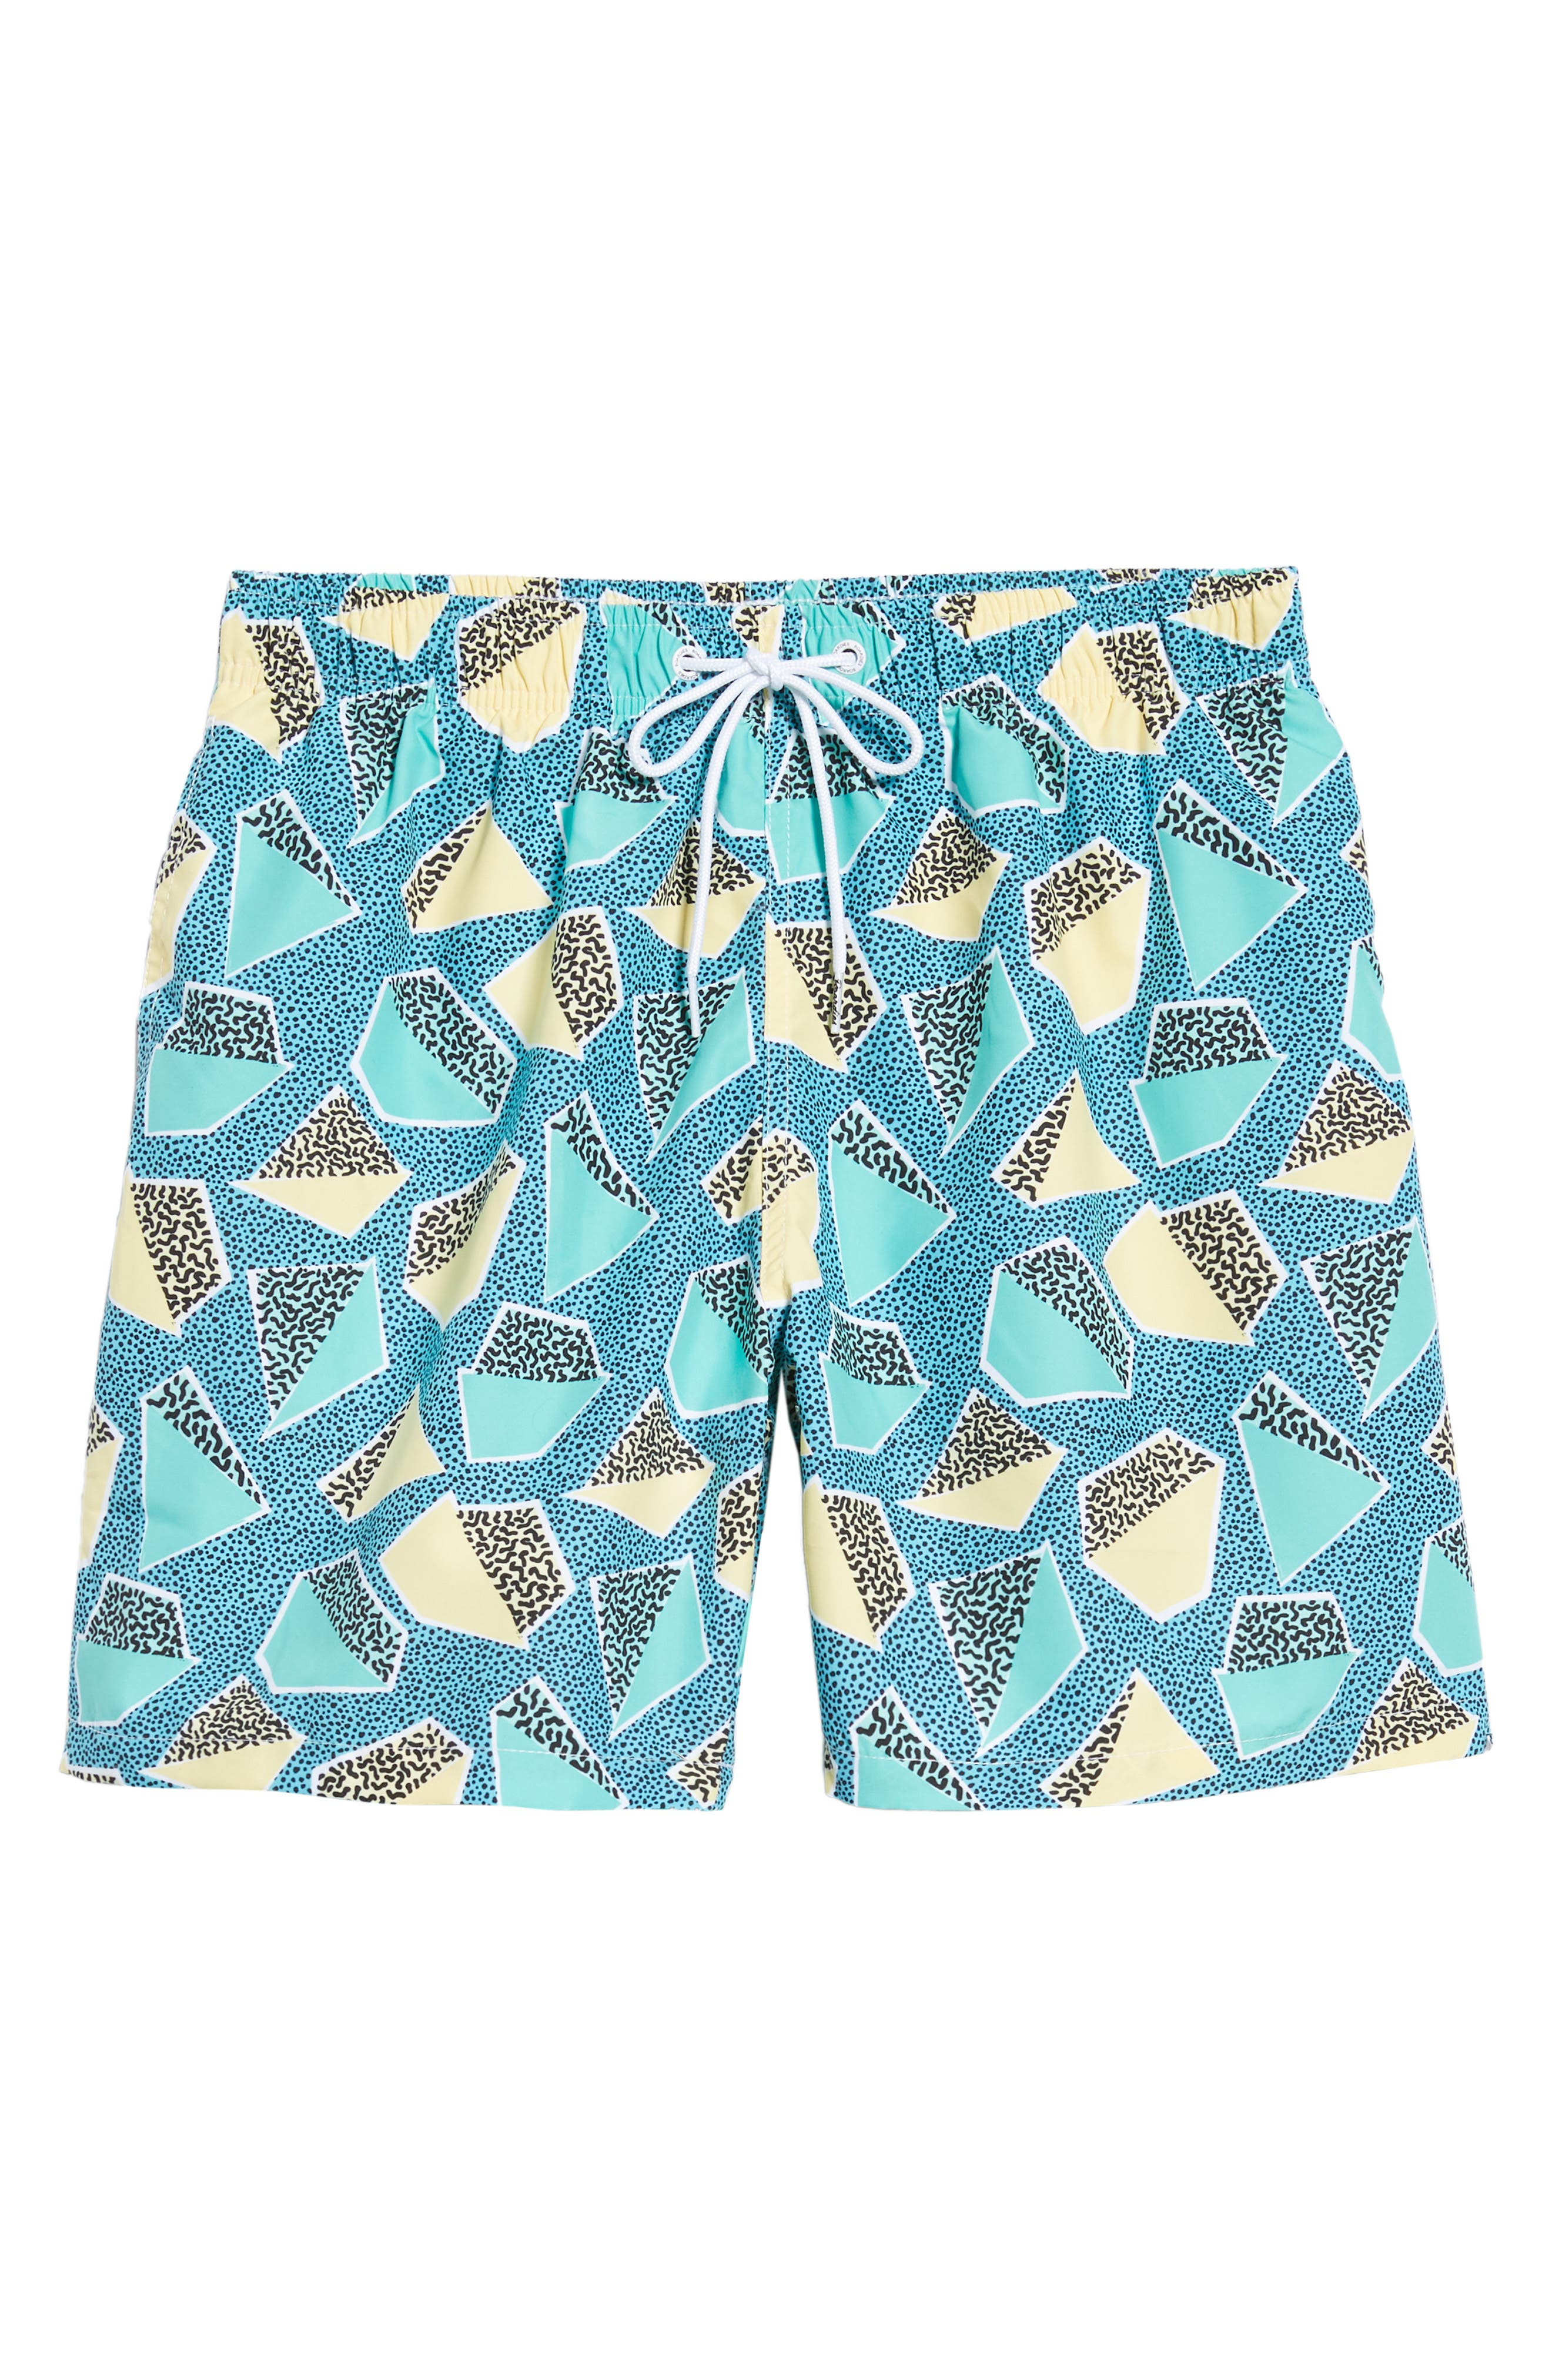 Everglades Swim Trunks,                             Alternate thumbnail 6, color,                             GREEN